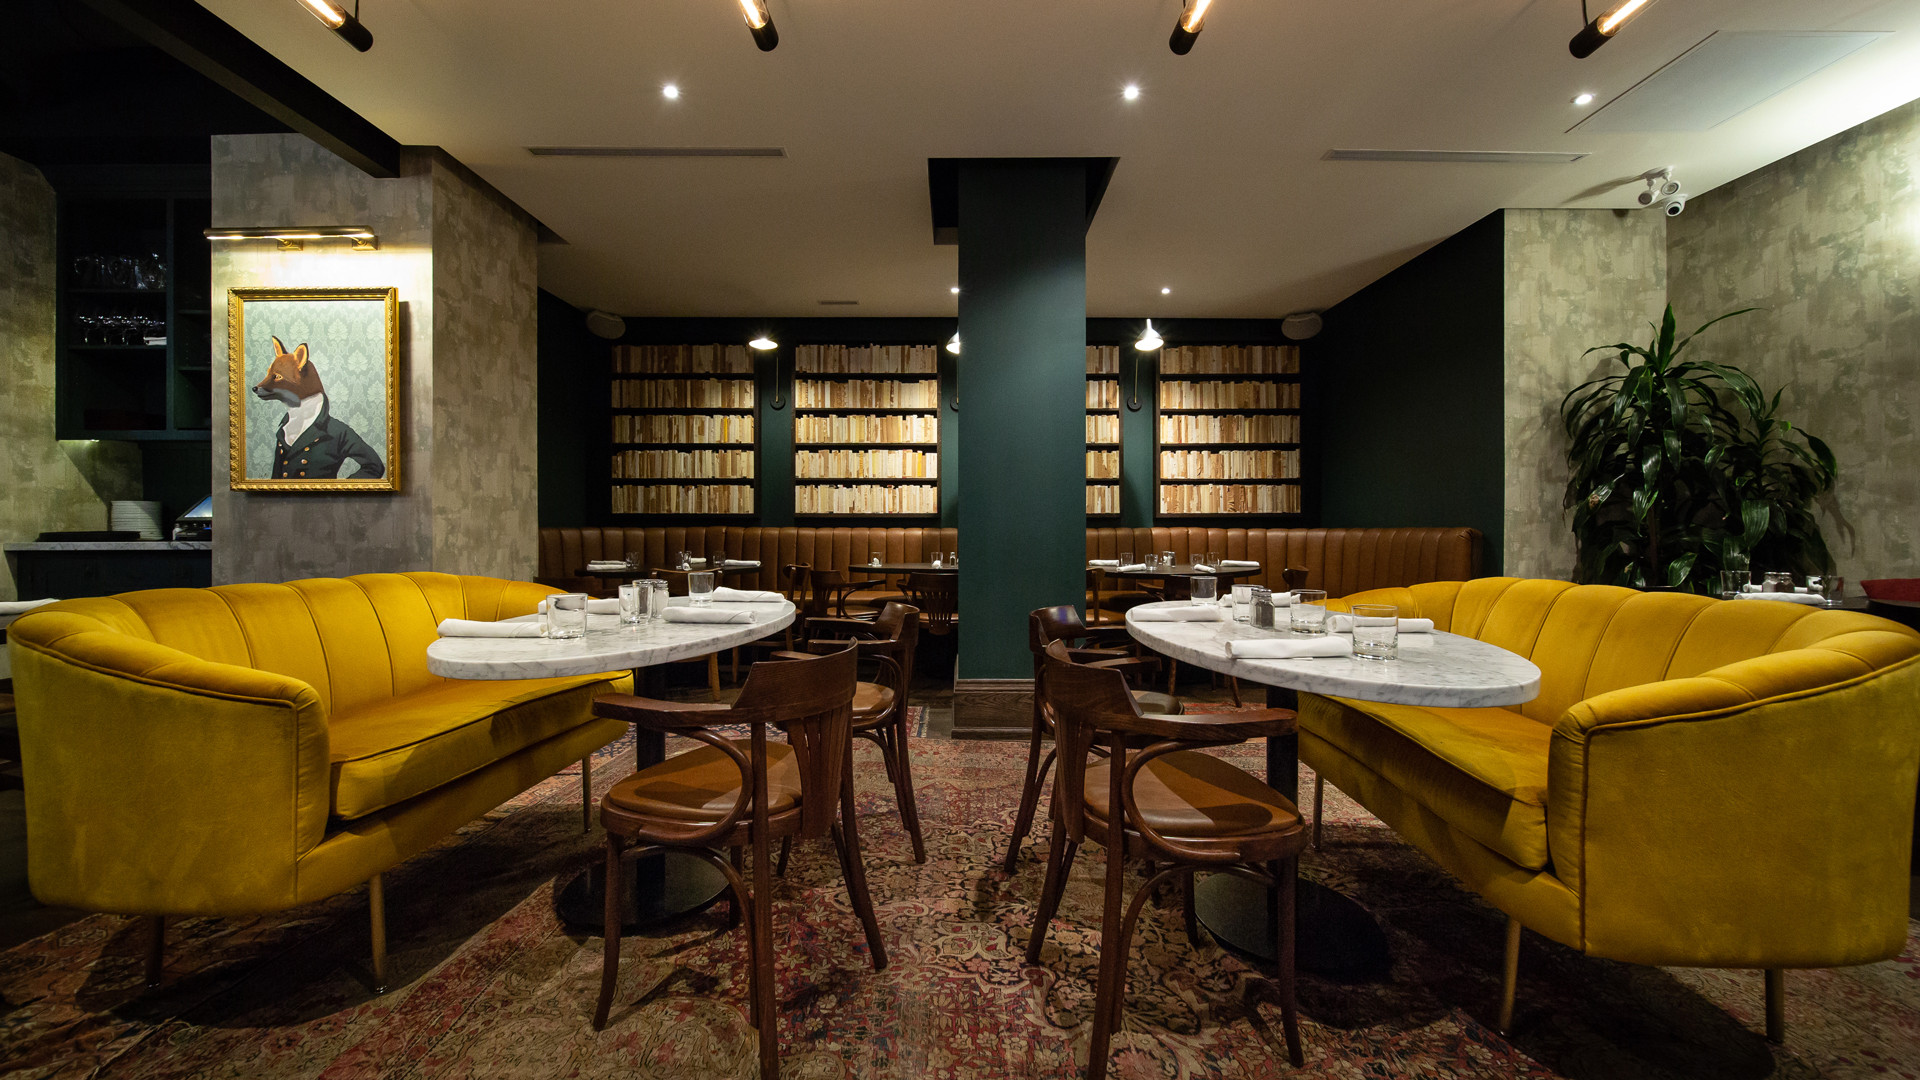 Hotel review: the Kimpton Saint George hotel, Toronto | The Fortunate Fox bar and restaurant